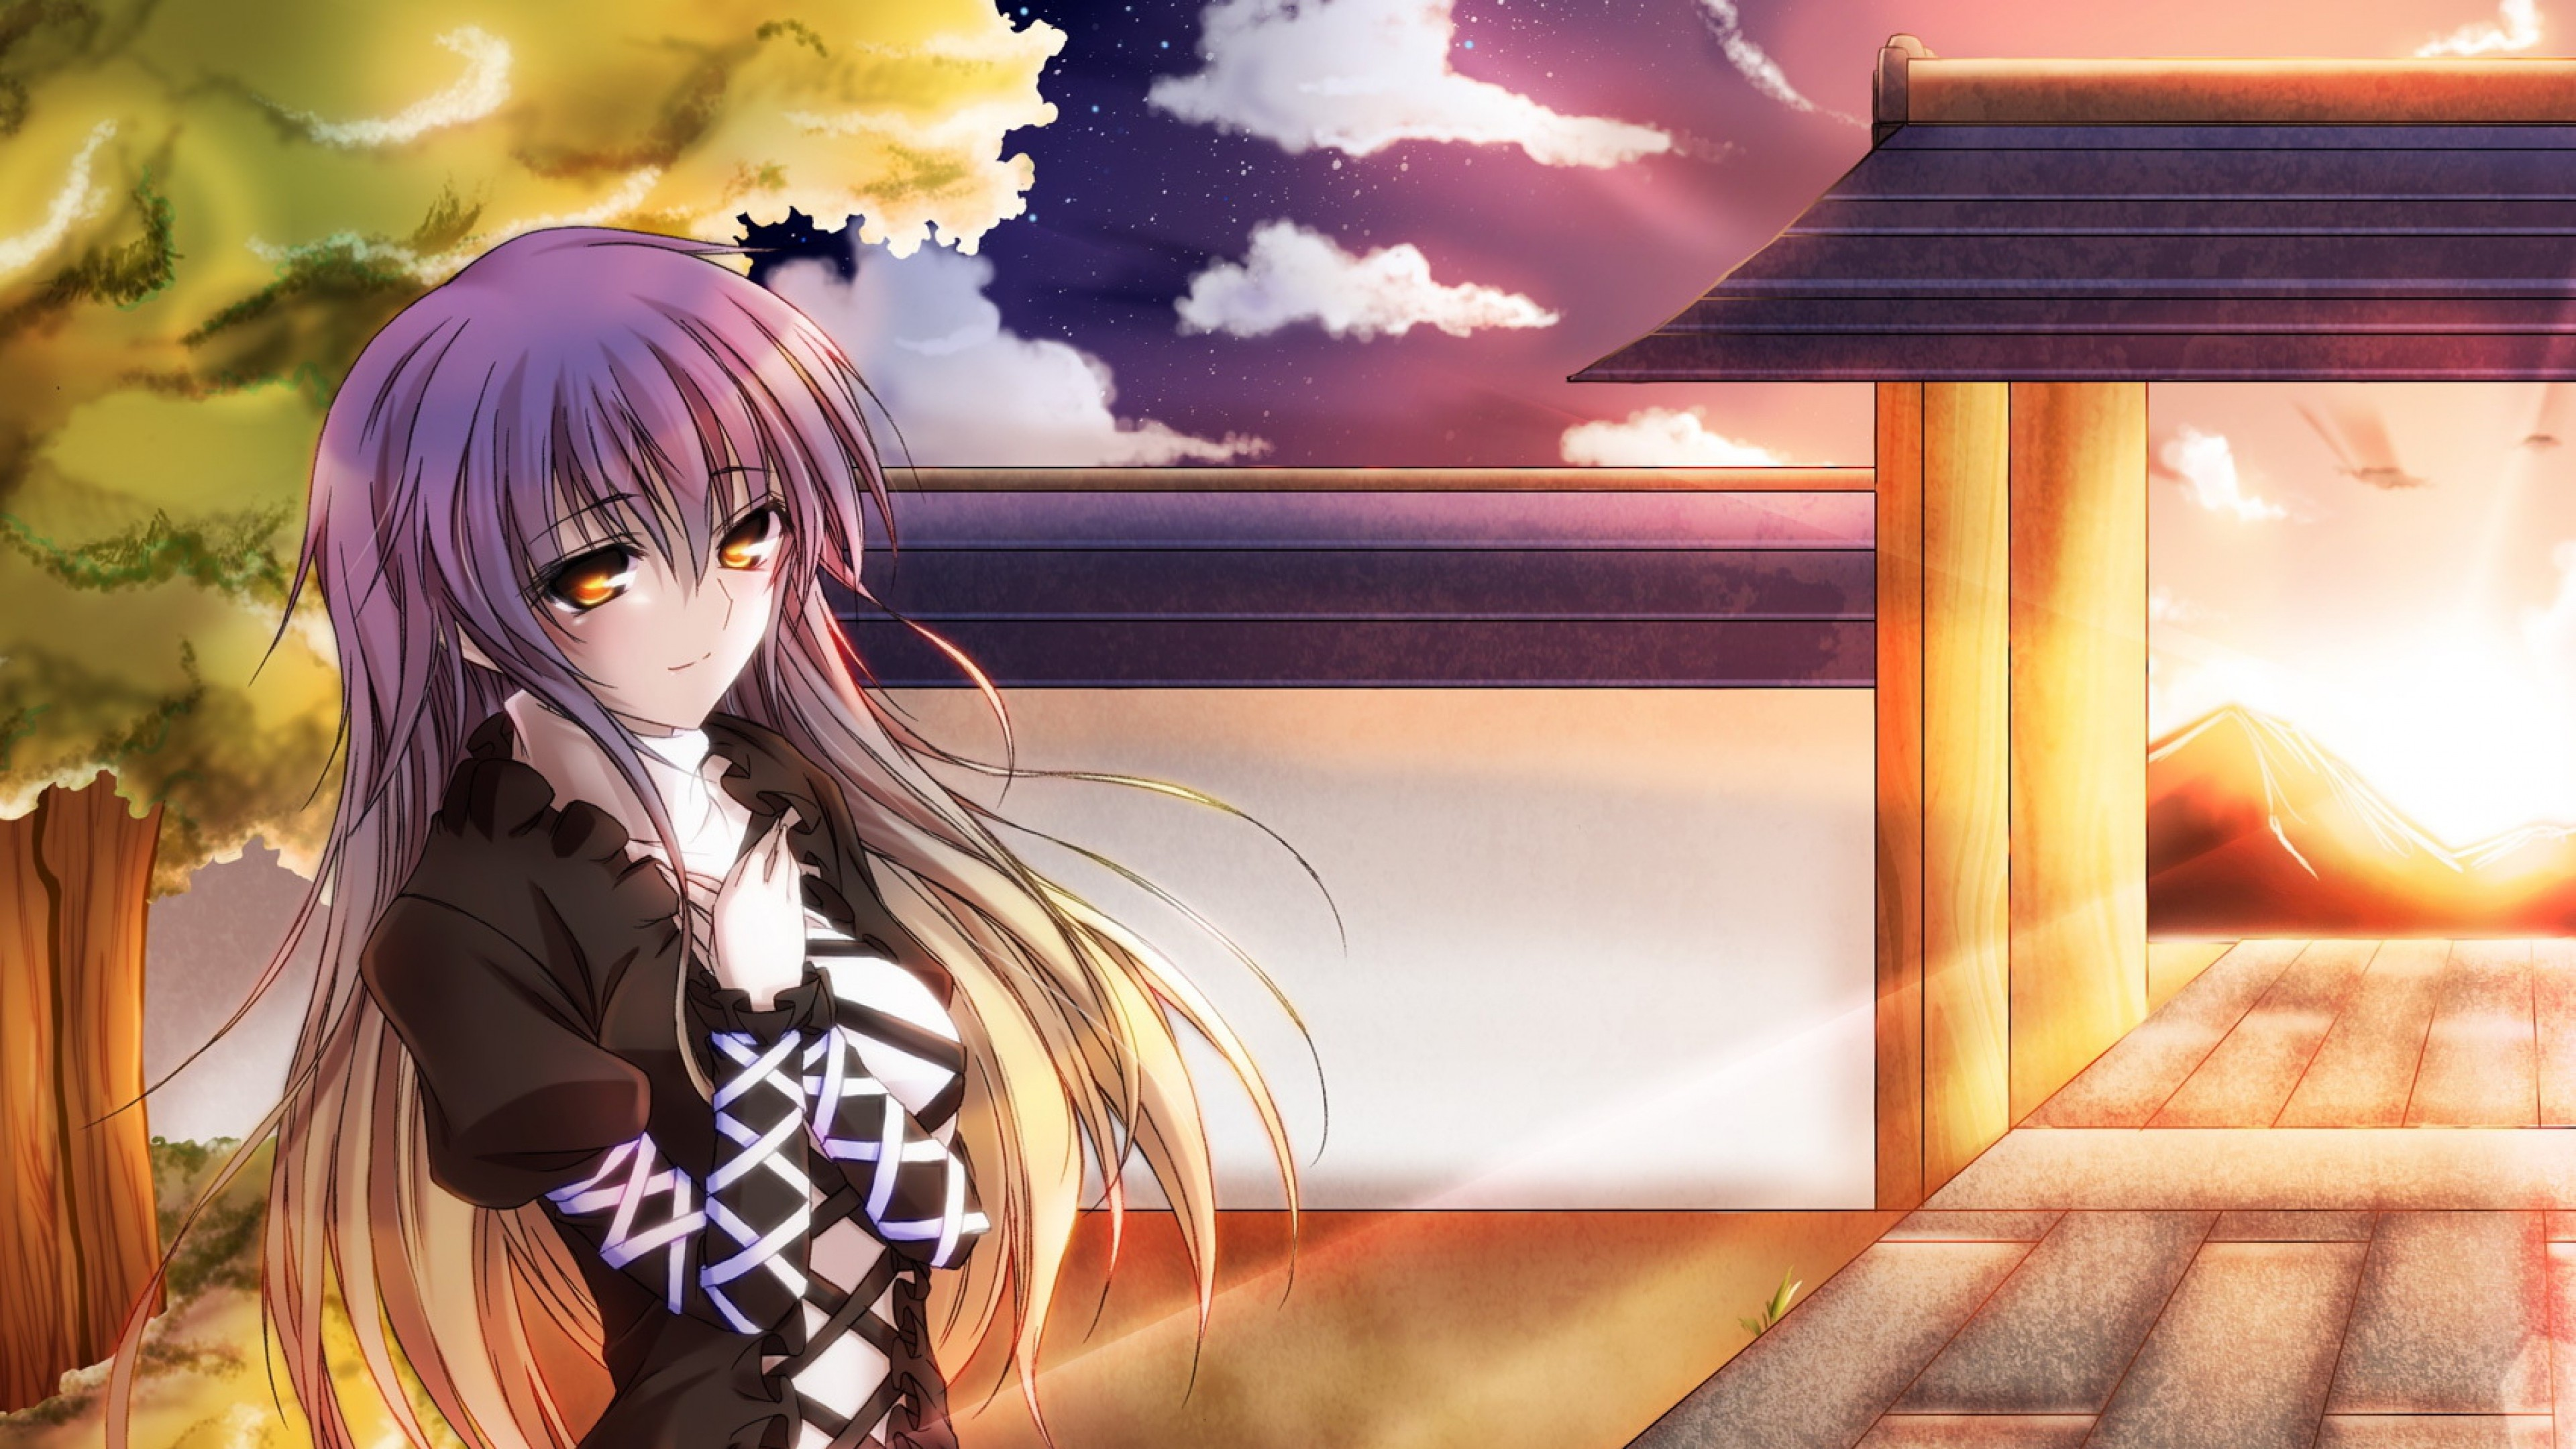 Wallpaper touhou collection, girl, pretty, sunset